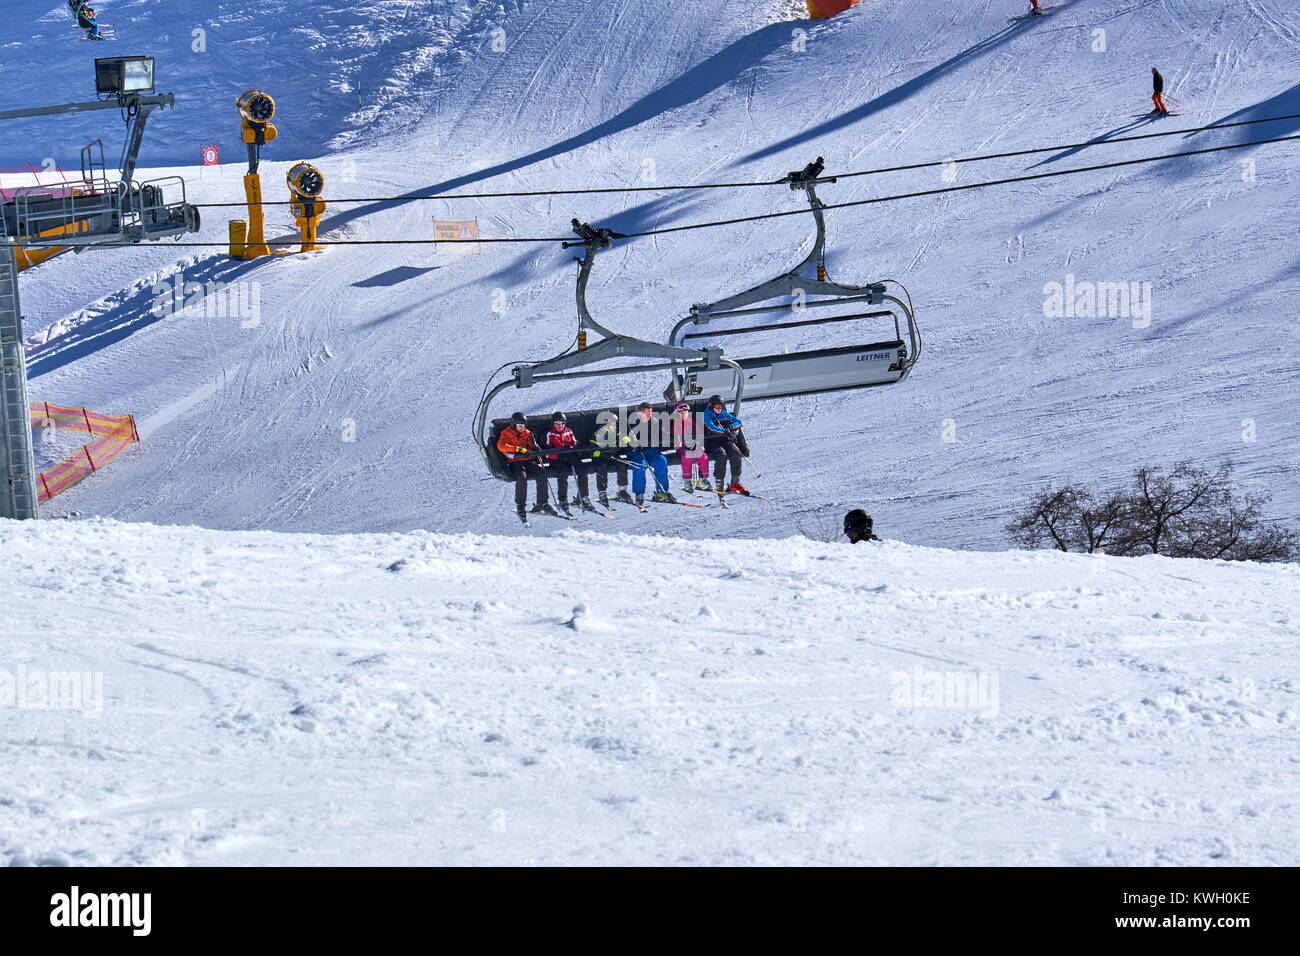 WINTERBERG, GERMANY - FEBRUARY 15, 2017: Chairlift system part of the Ski Carousel Winterberg - Stock Image